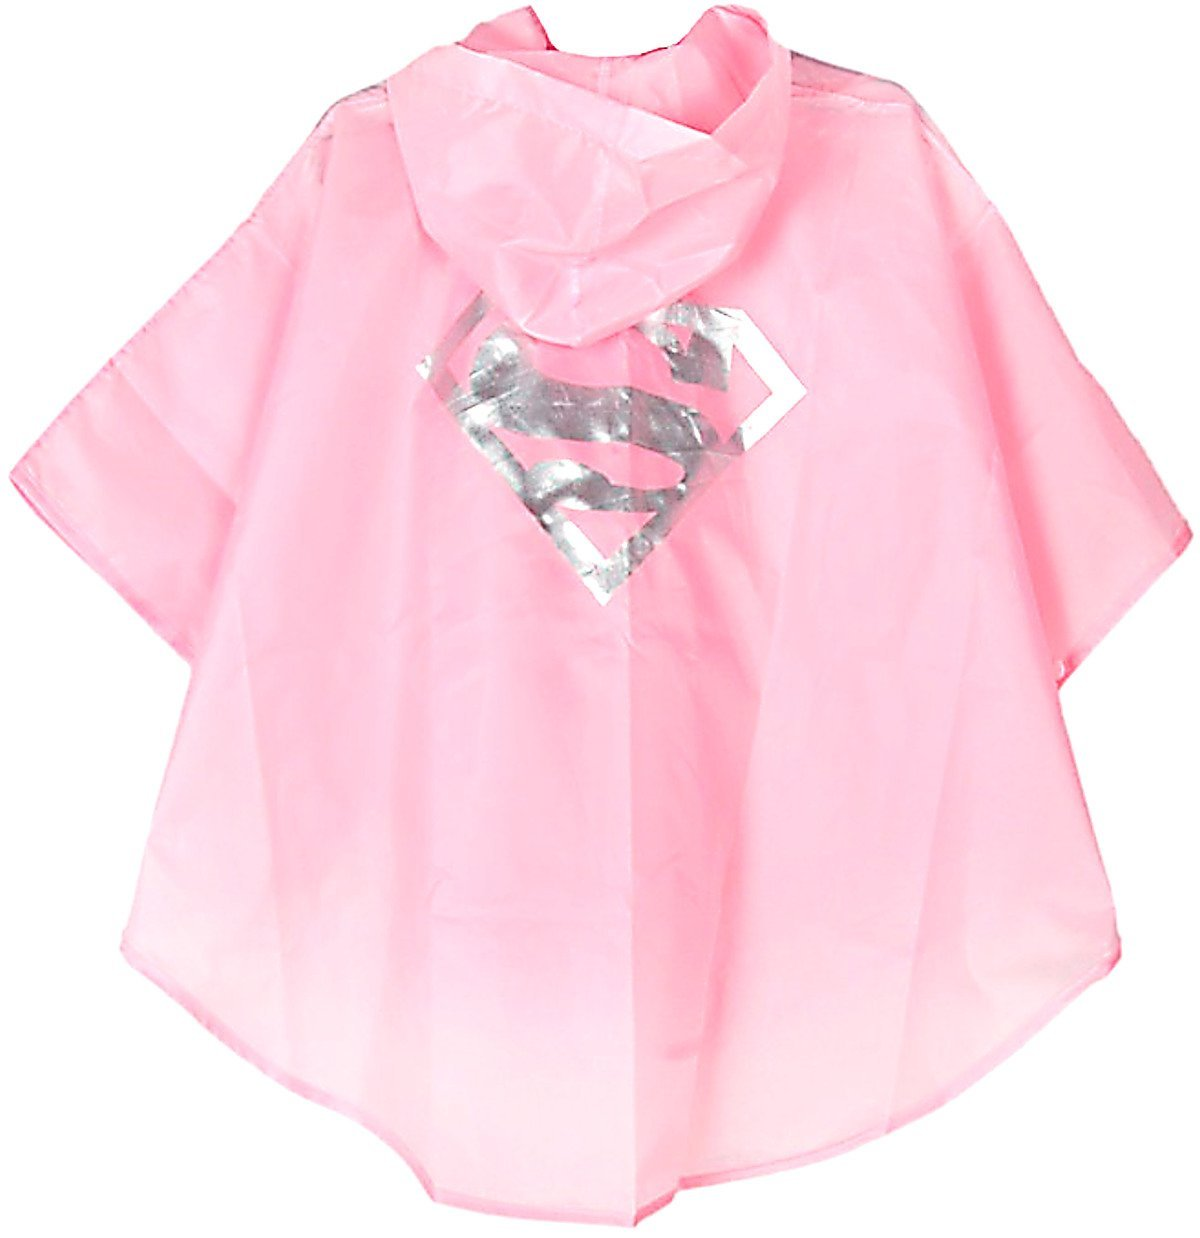 KIDS SUPERGIRL PONCHO RAINCOAT WITH FREE SUPER HERO BAG